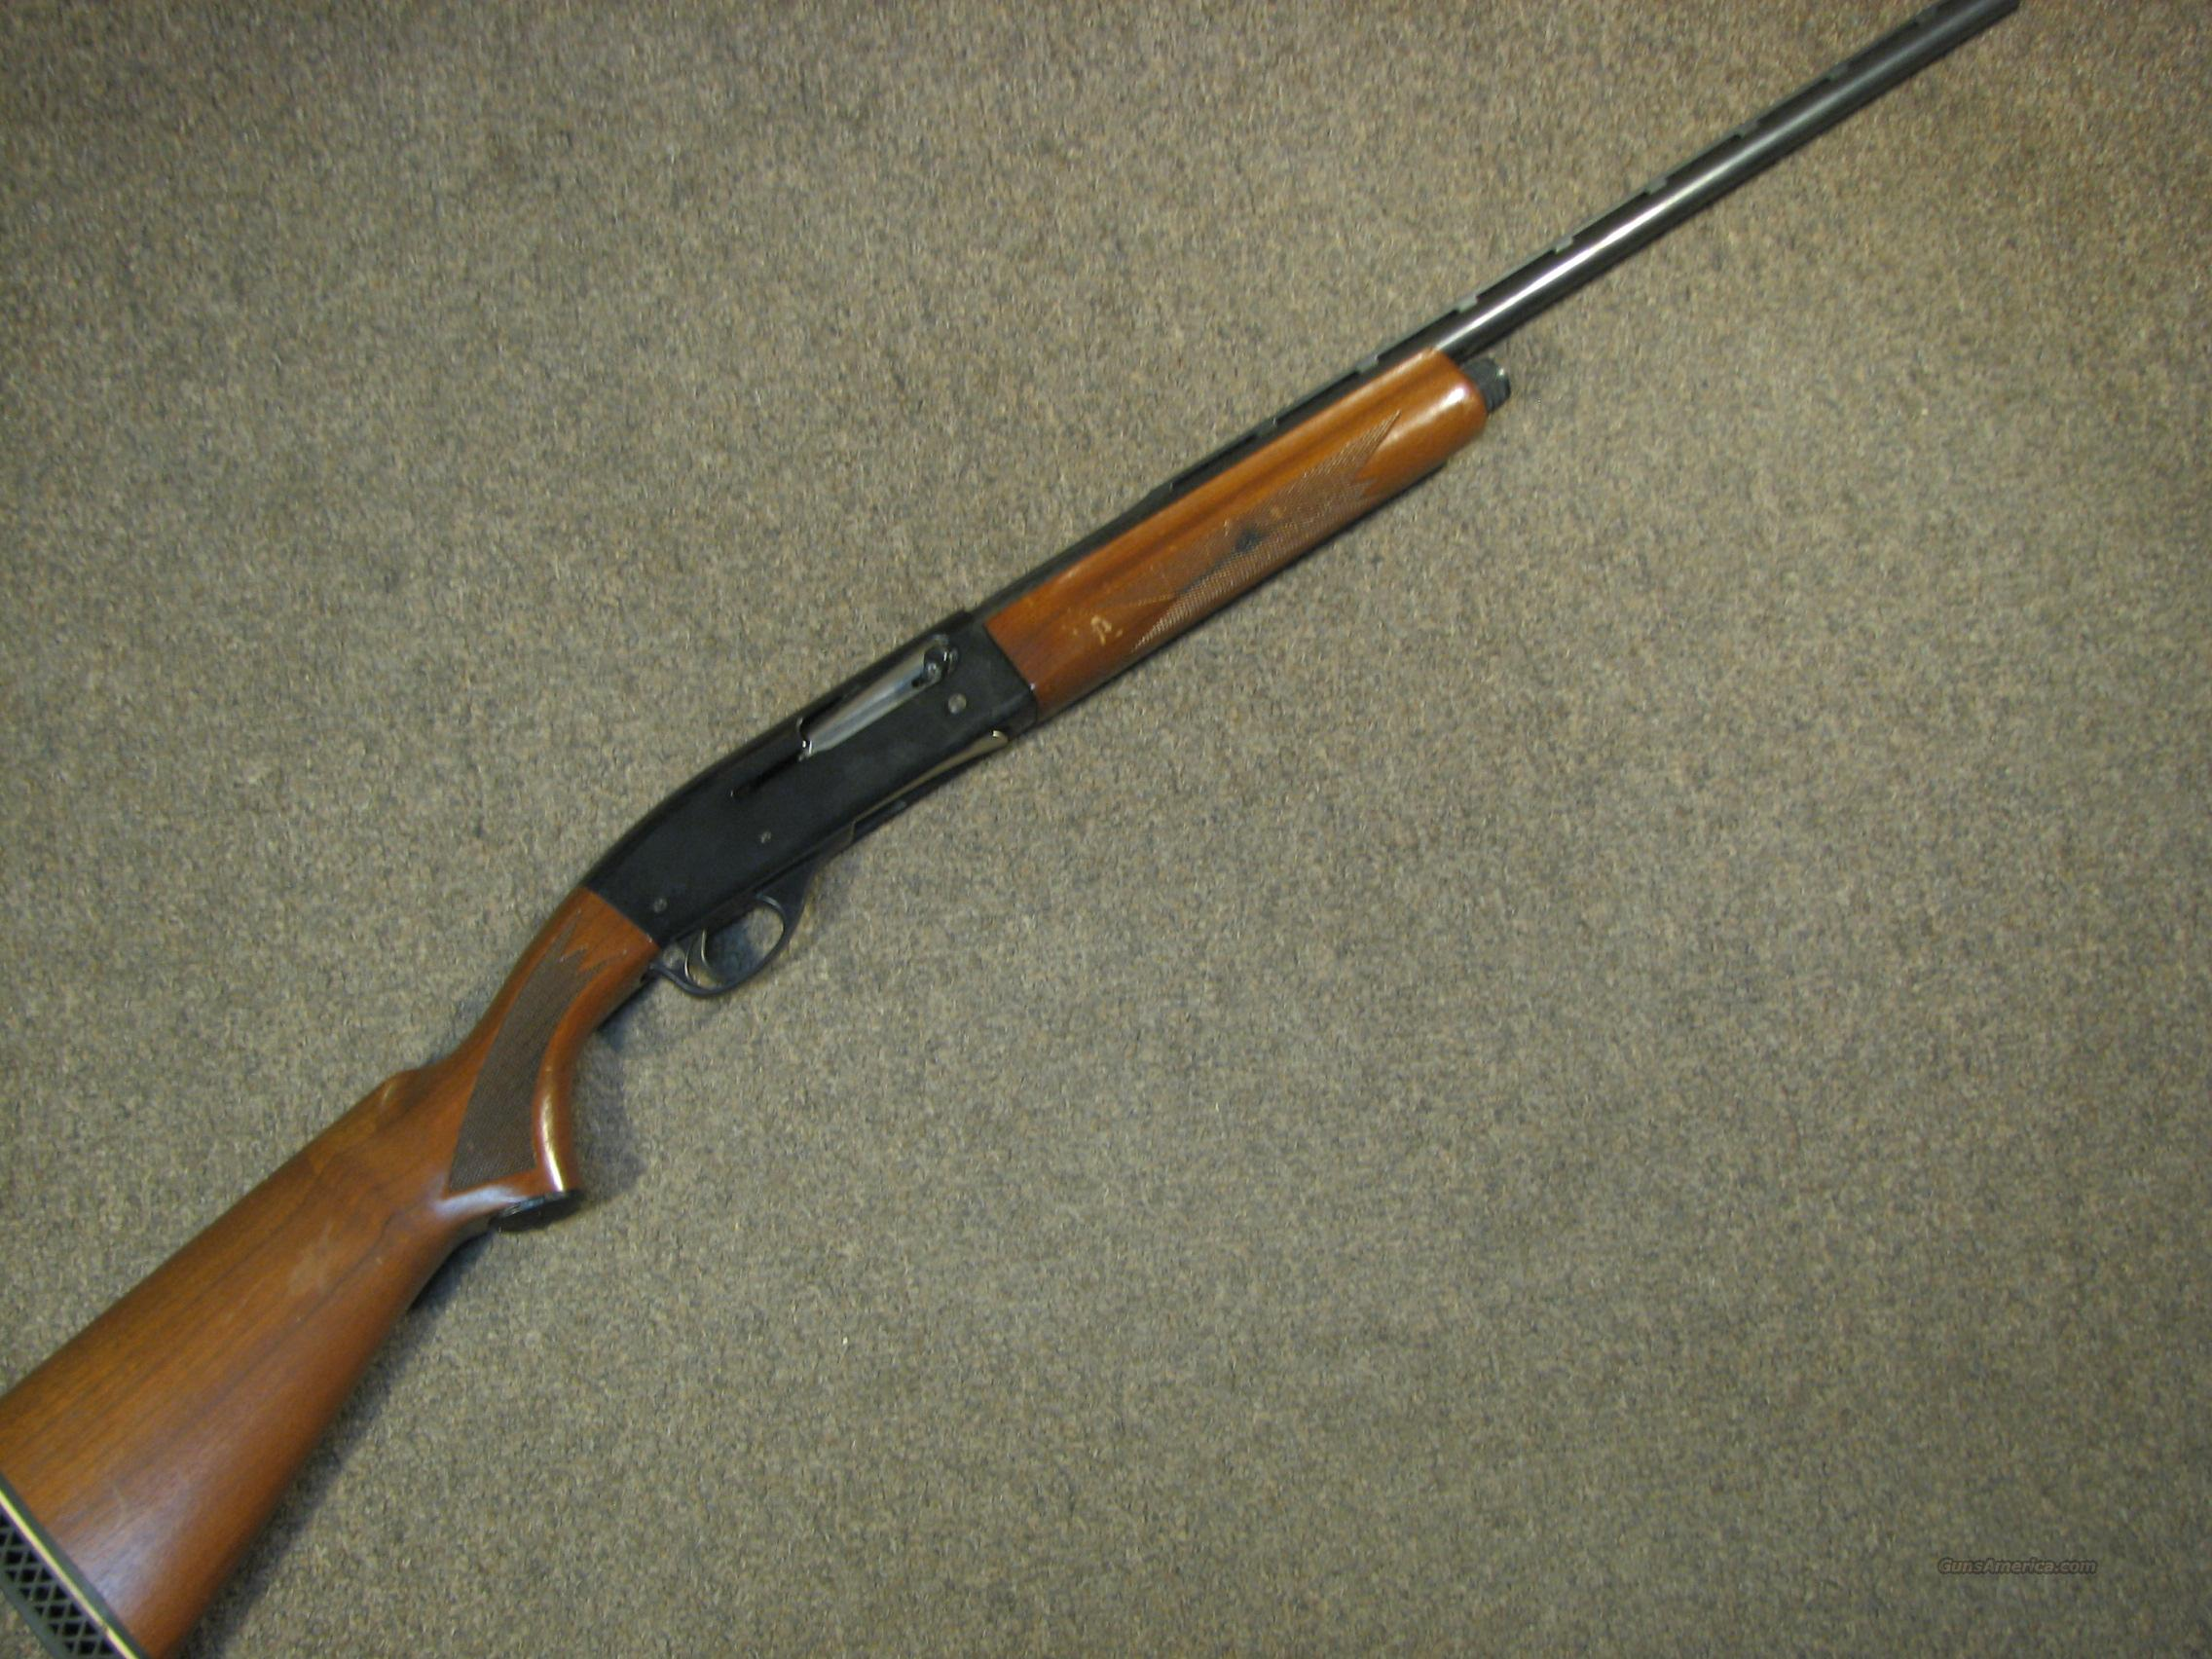 REMINGTON 11-48 28 GAUGE SHOTGUN for sale